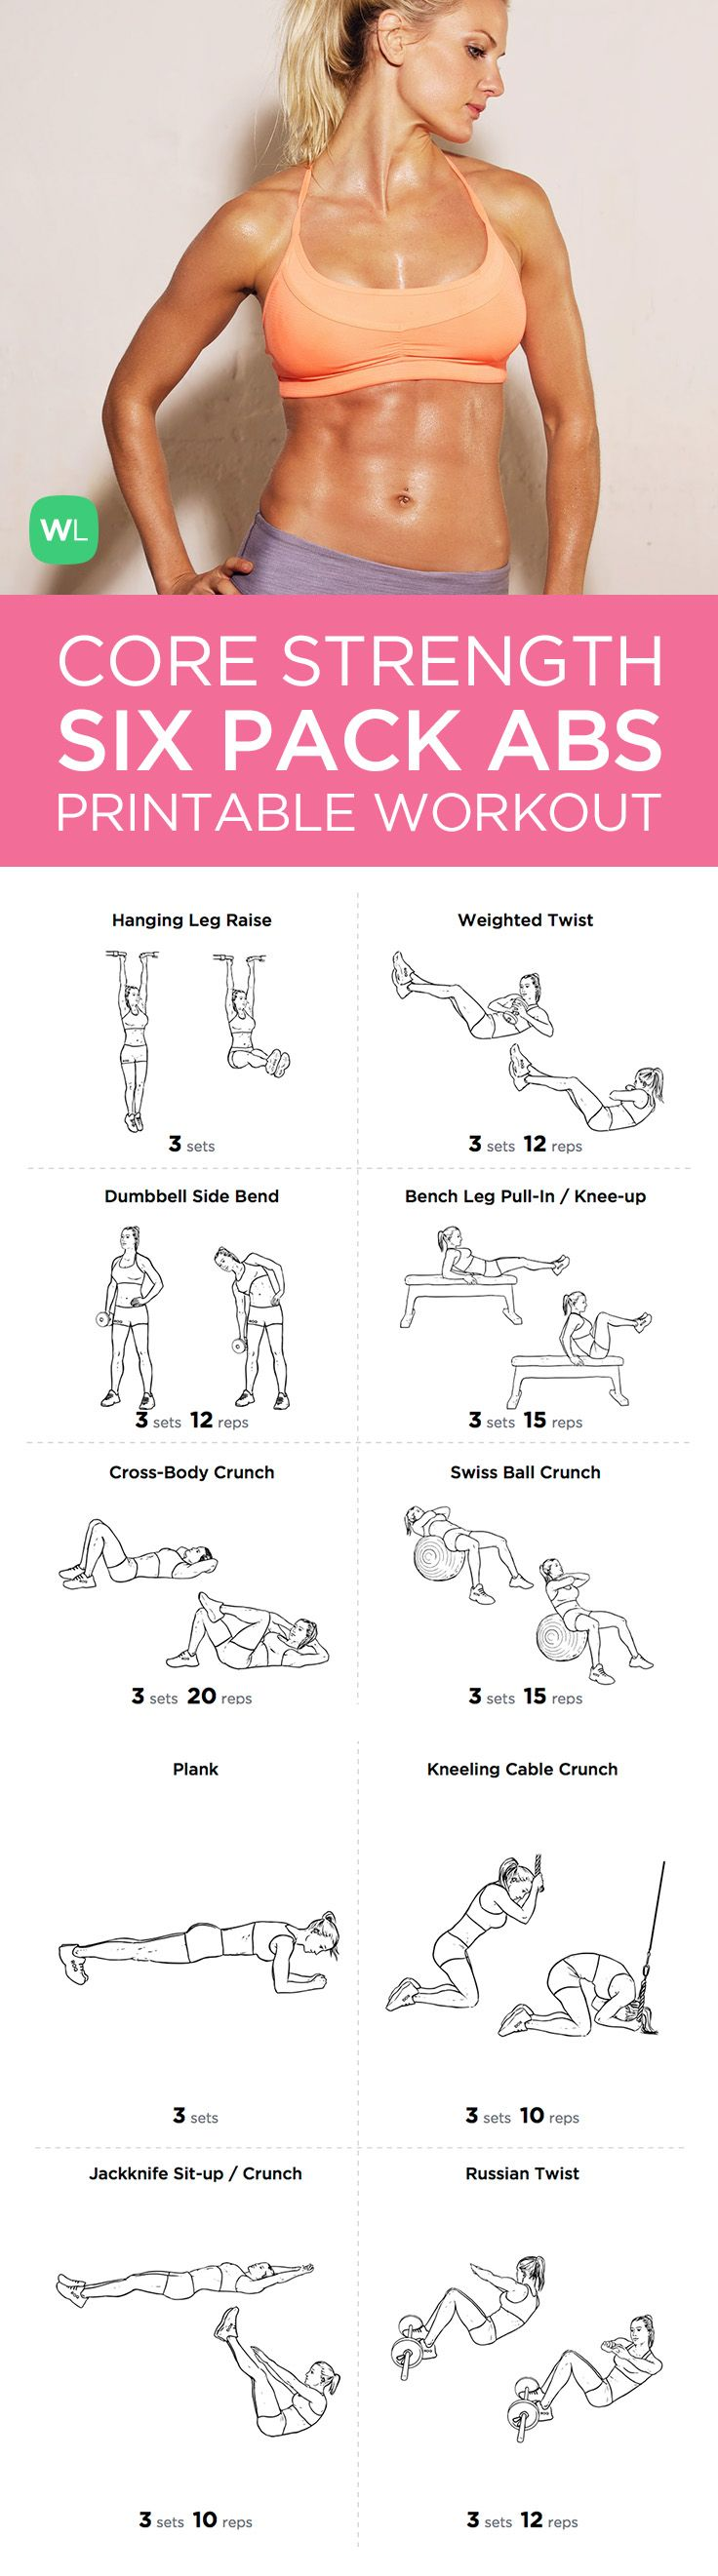 Want to get that perfect six pack? Try this comprehensive abdominal gym workout routine that will hit your upper and lower abs as well as obliques for a perfectly toned core. – Visit http://workoutlabs.com/workout-plans/great-abdominal-workout-routine-for-six-pack-abs-printable-workout/